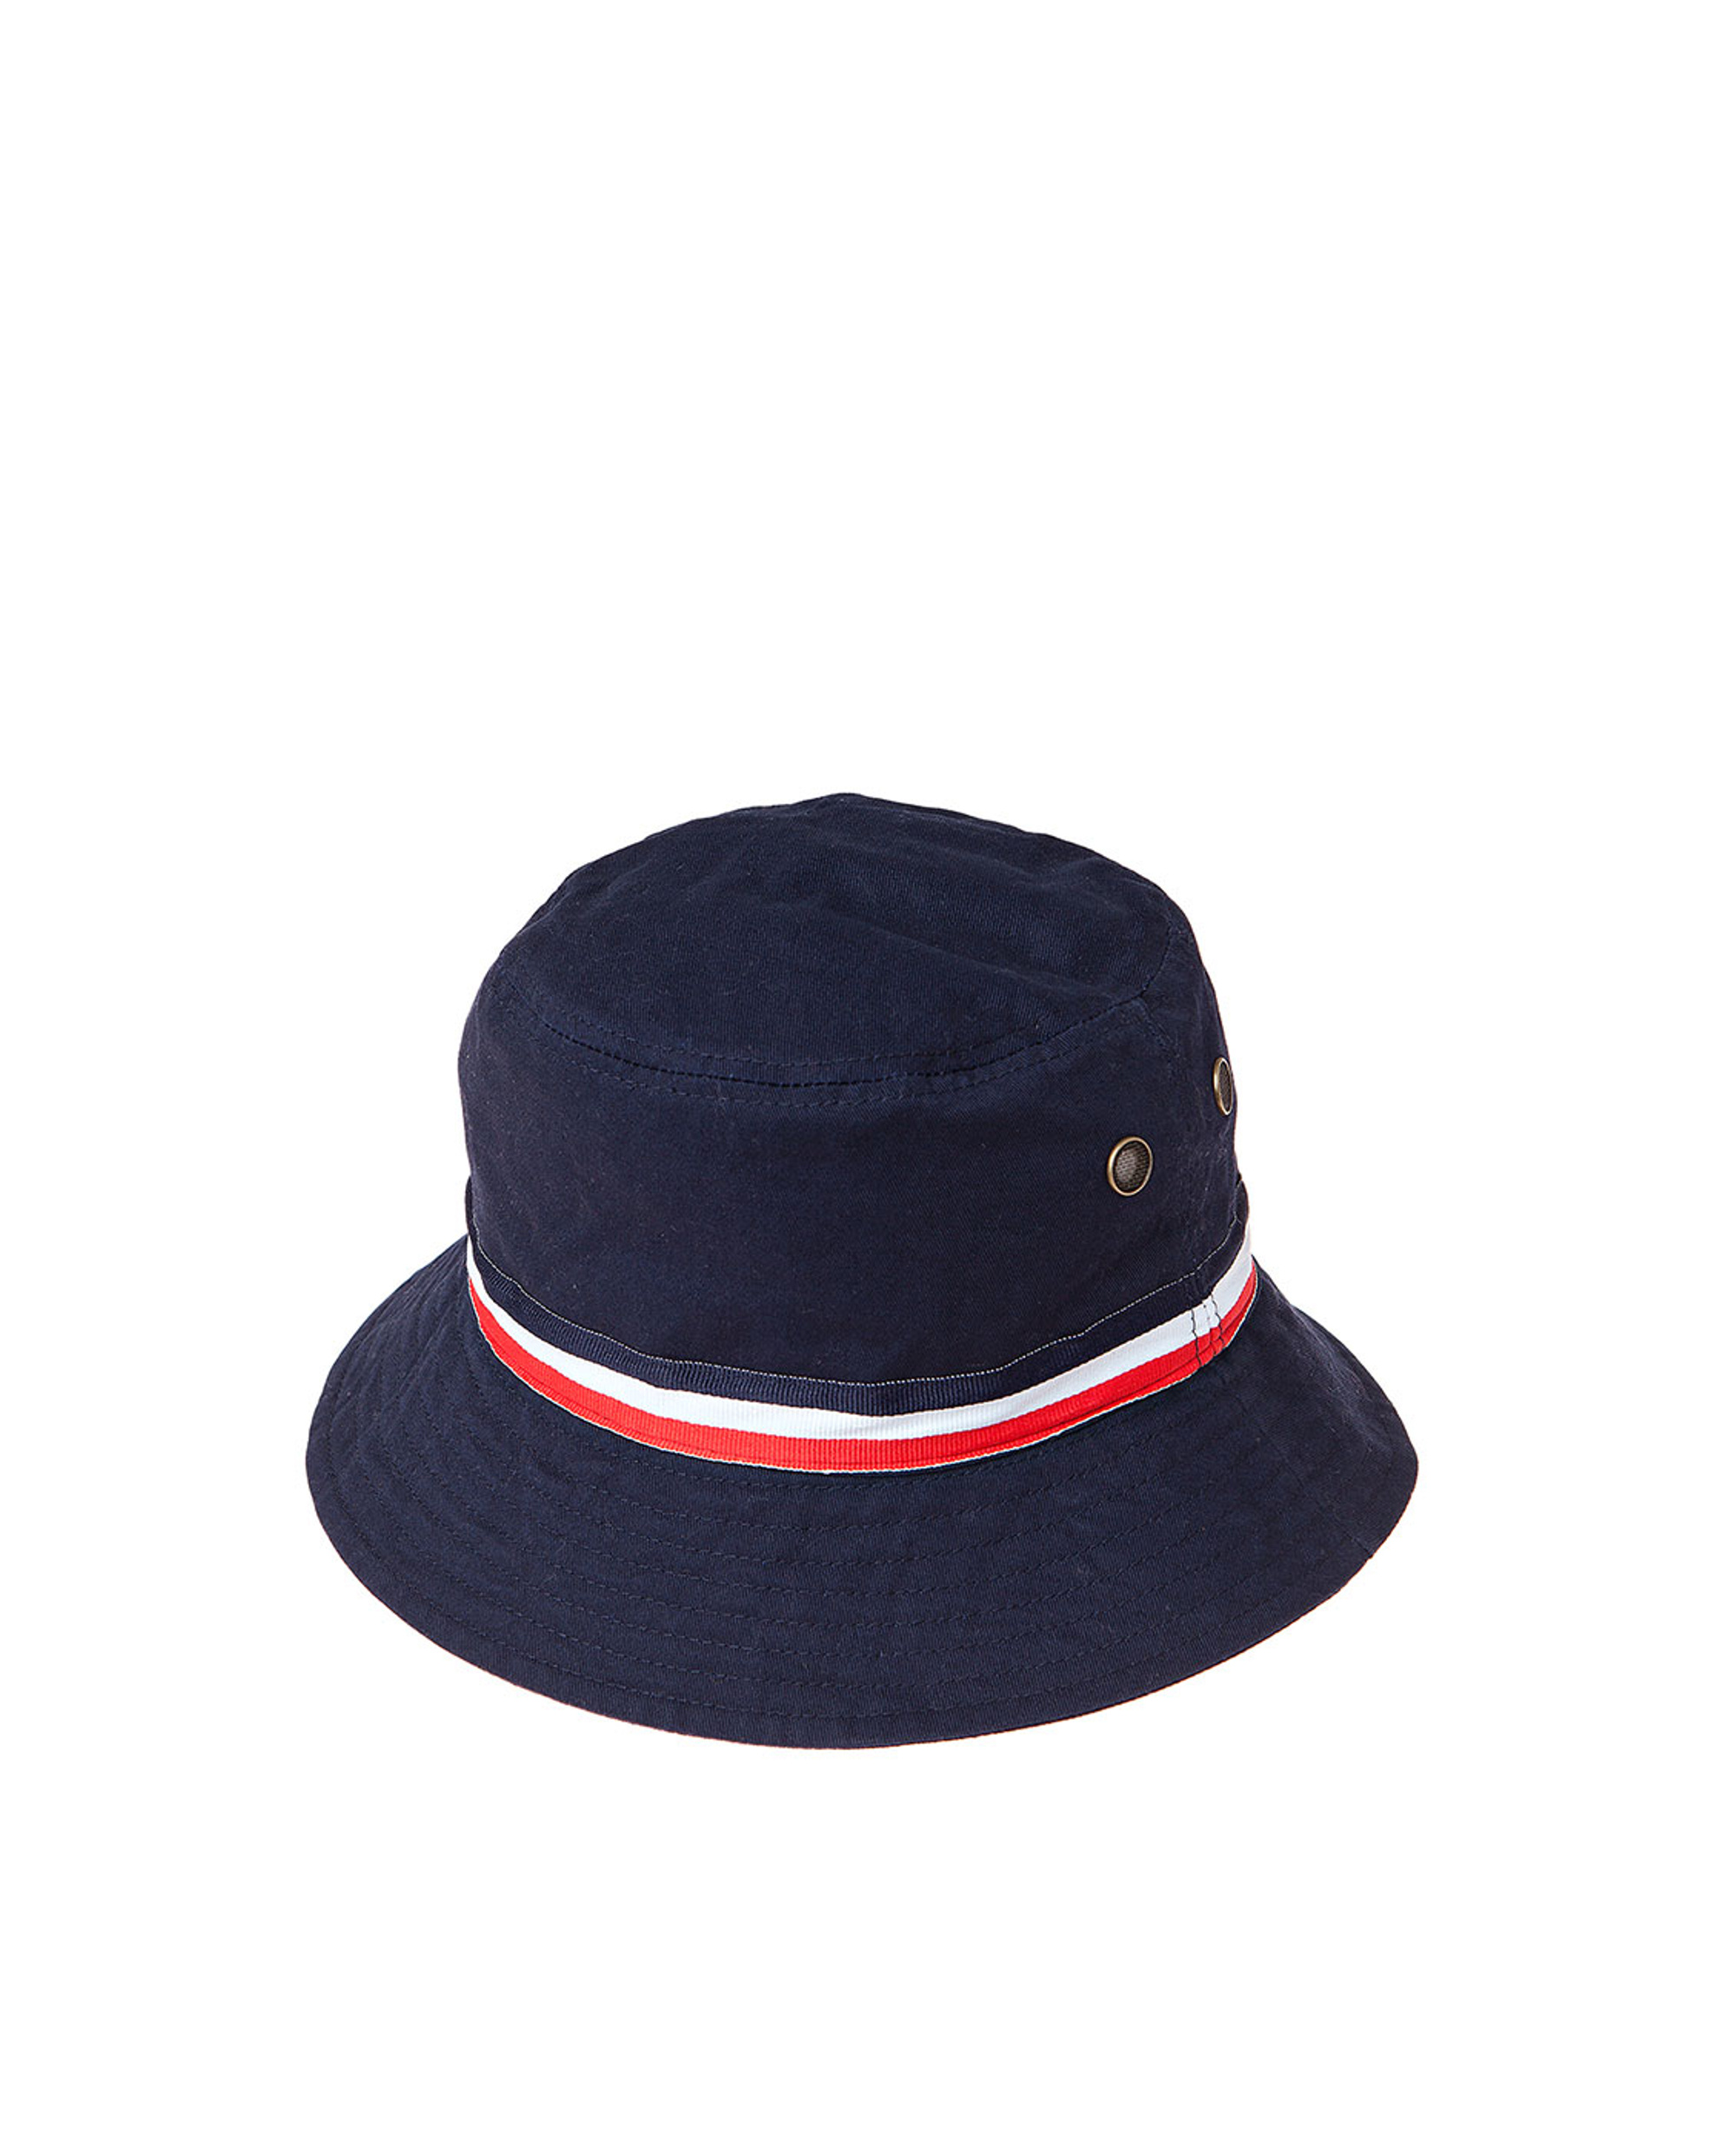 Bridgehampton Bucket Hat, Deep Marine Blue